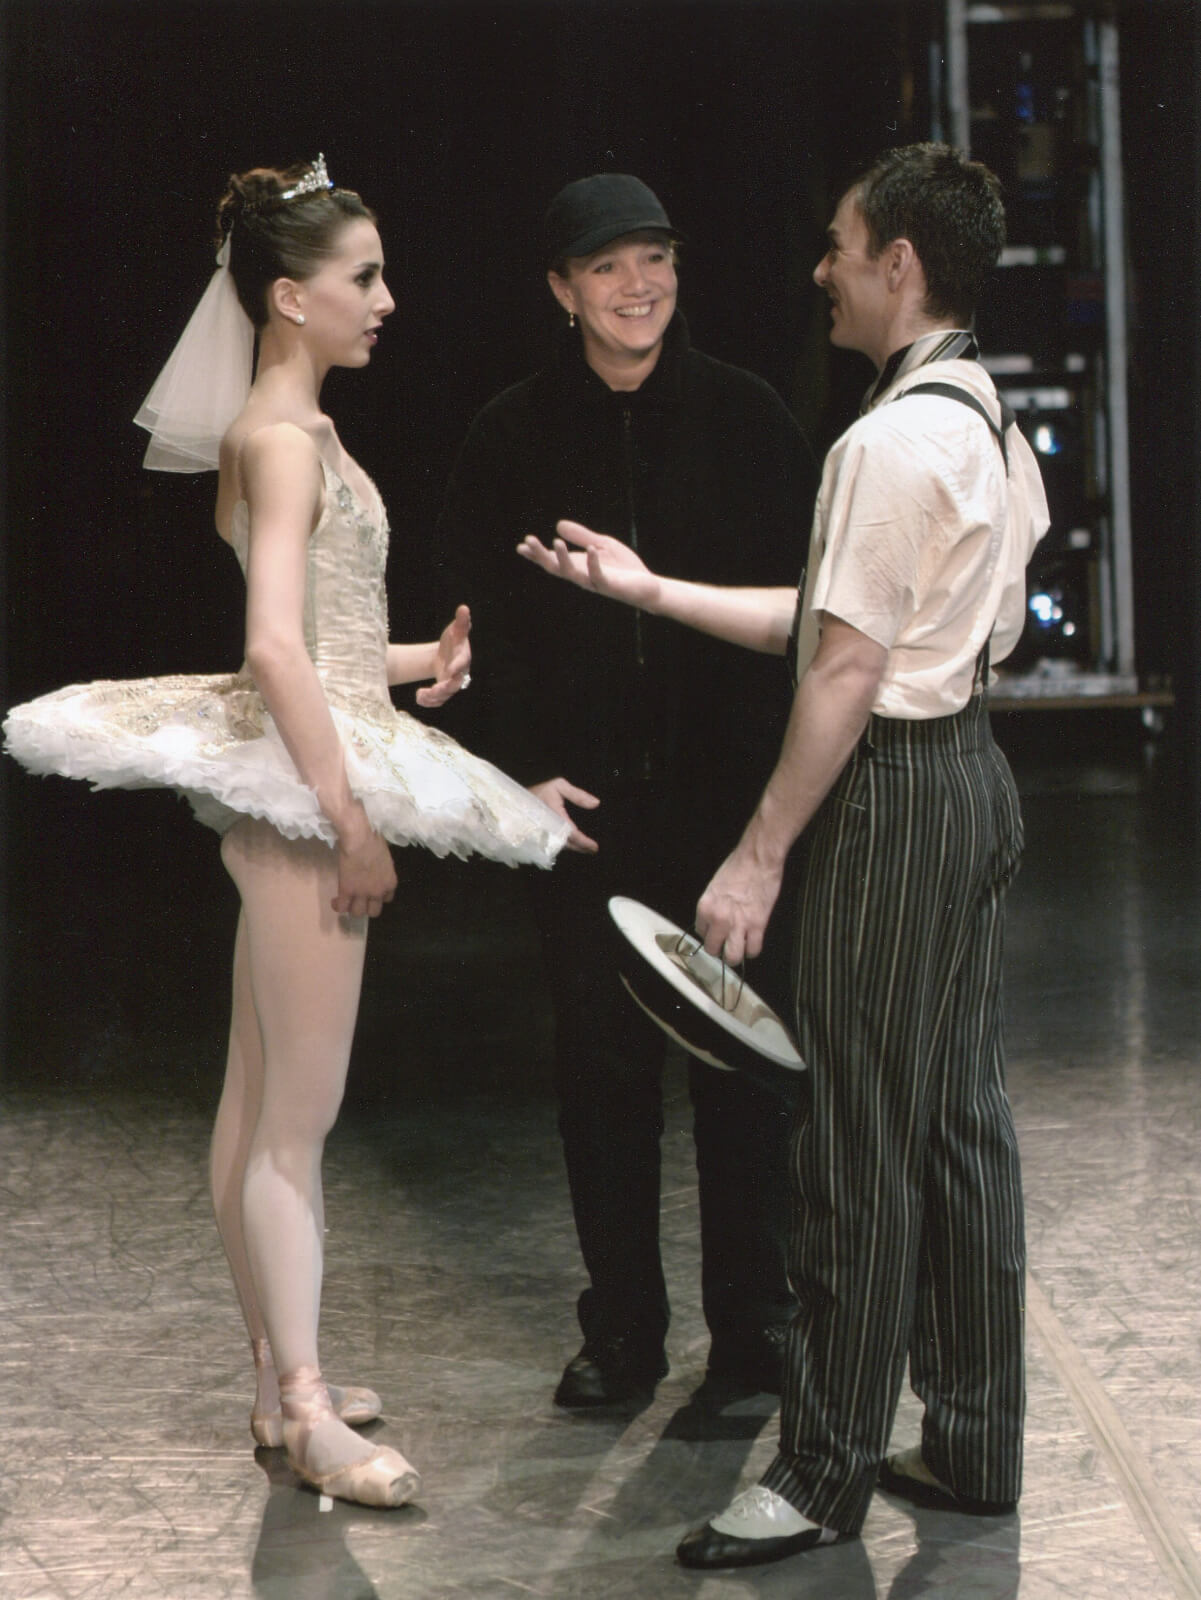 """Stroman (smiling and wearing all black) in between Alexandra Ansanelli (wearing a white tutu) and Tom Gold (wearing pants with suspenders) rehearsing """"Making Whoopee"""" on stage."""